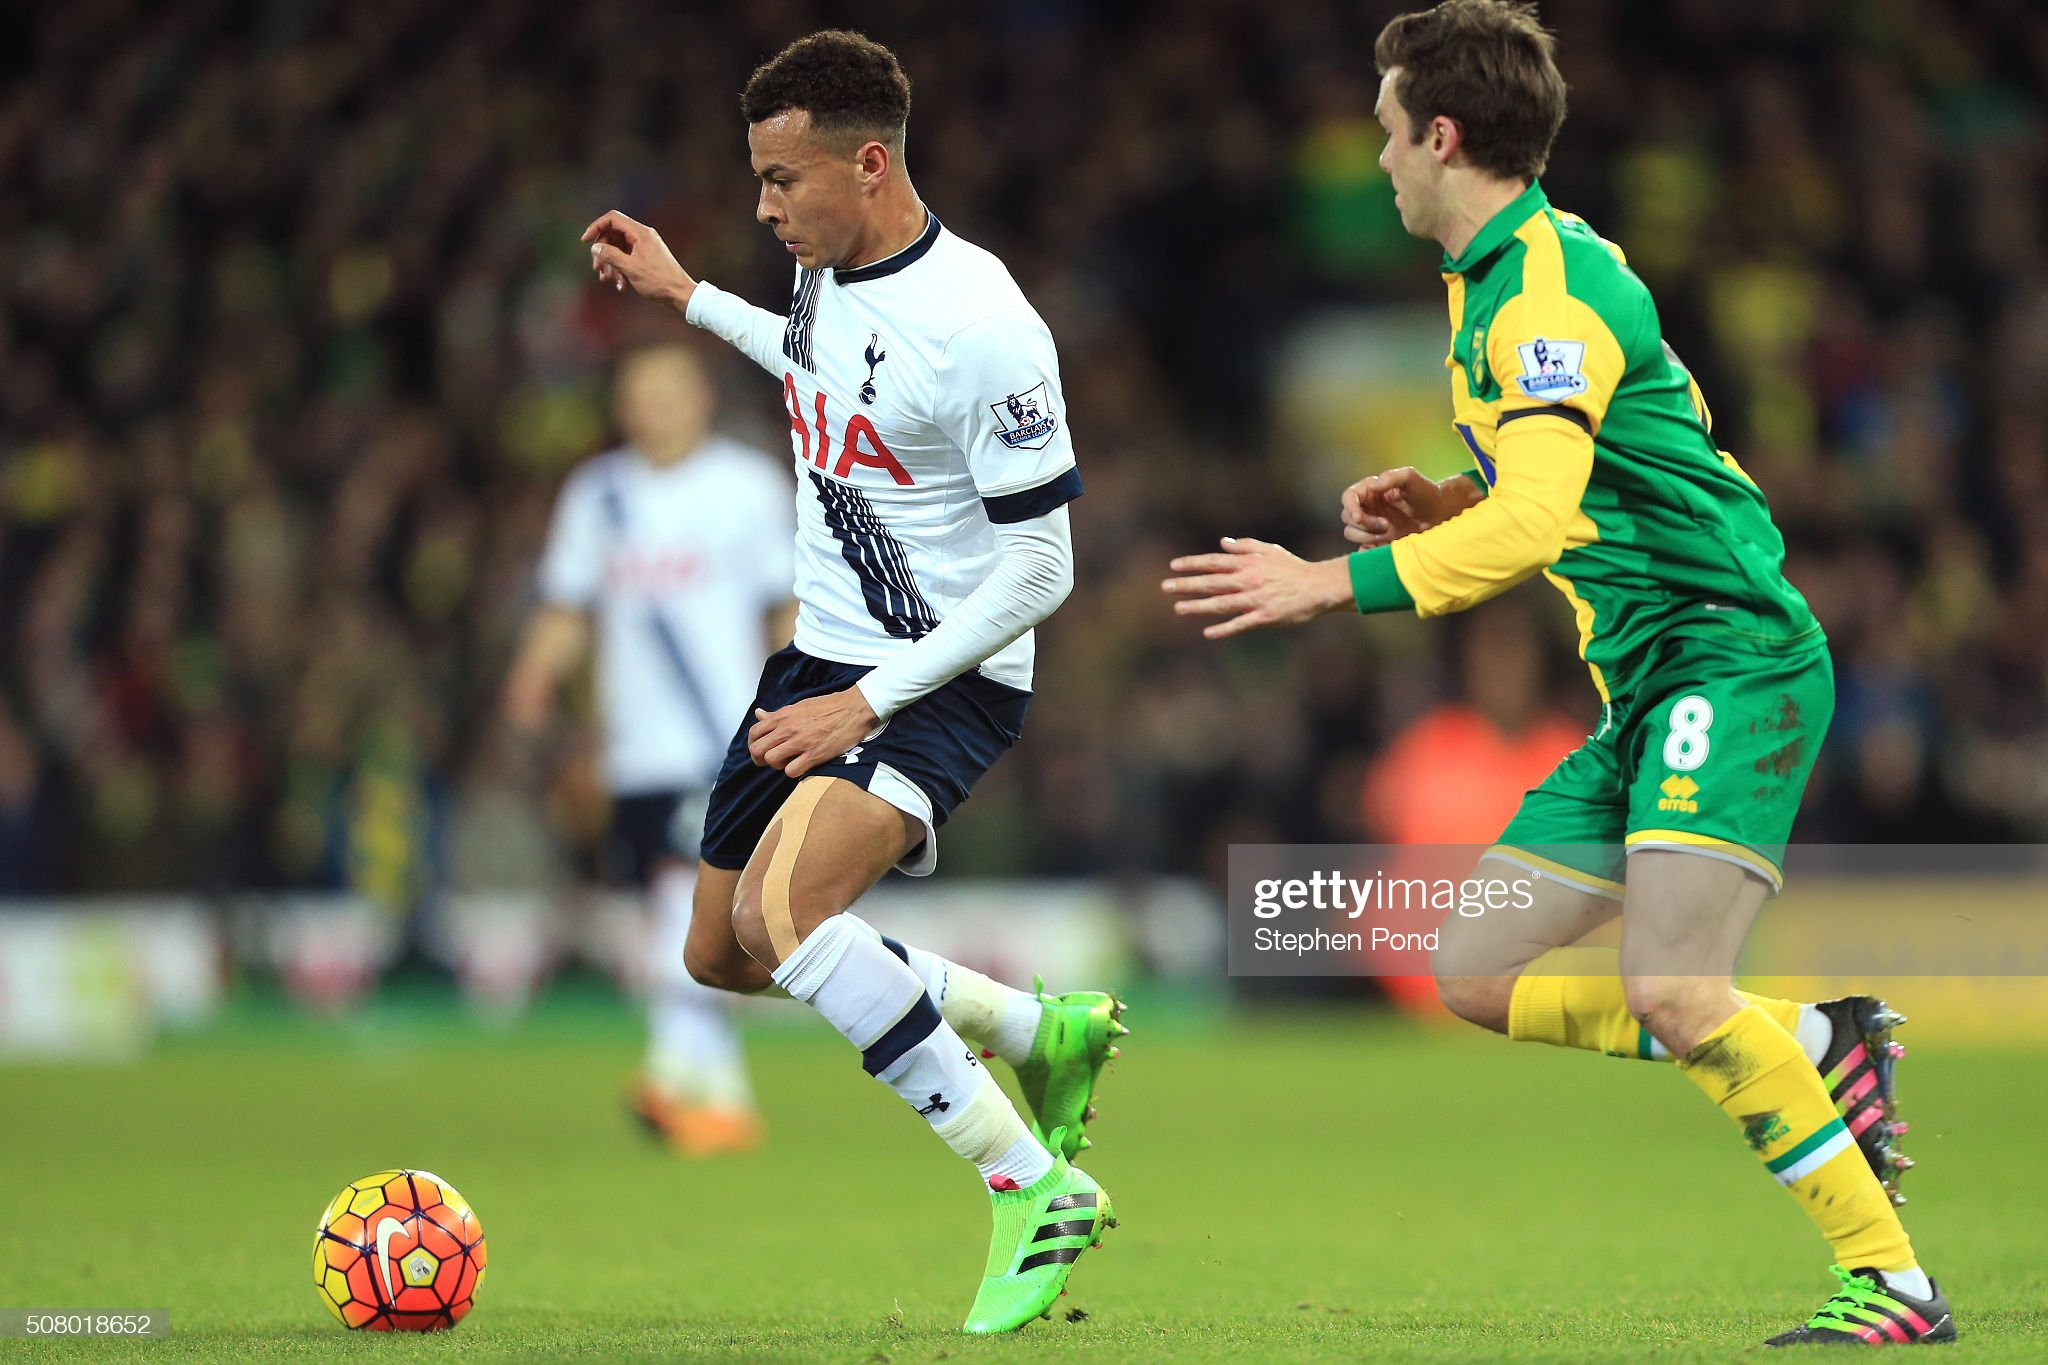 Norwich v Tottenham preview, prediction and odds